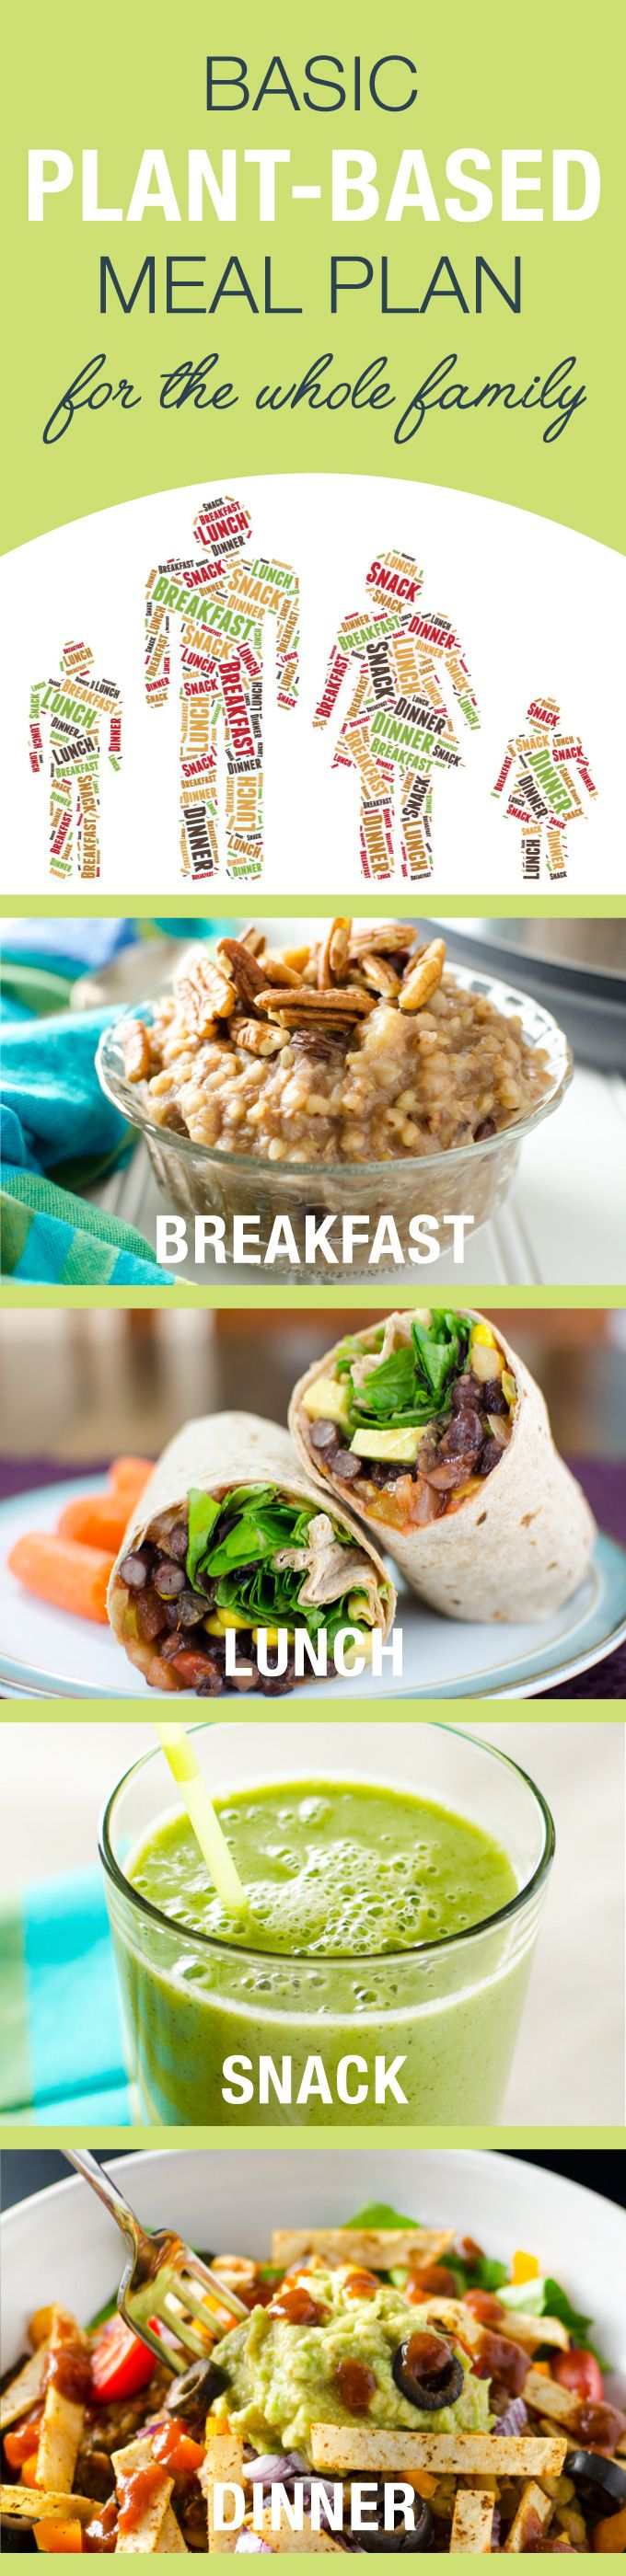 Basic Plant Based Meal Plan Breakfast Lunch Snack And Dinner Plant Based Diet Recipes Plant Based Meal Planning Vegan Meal Plans